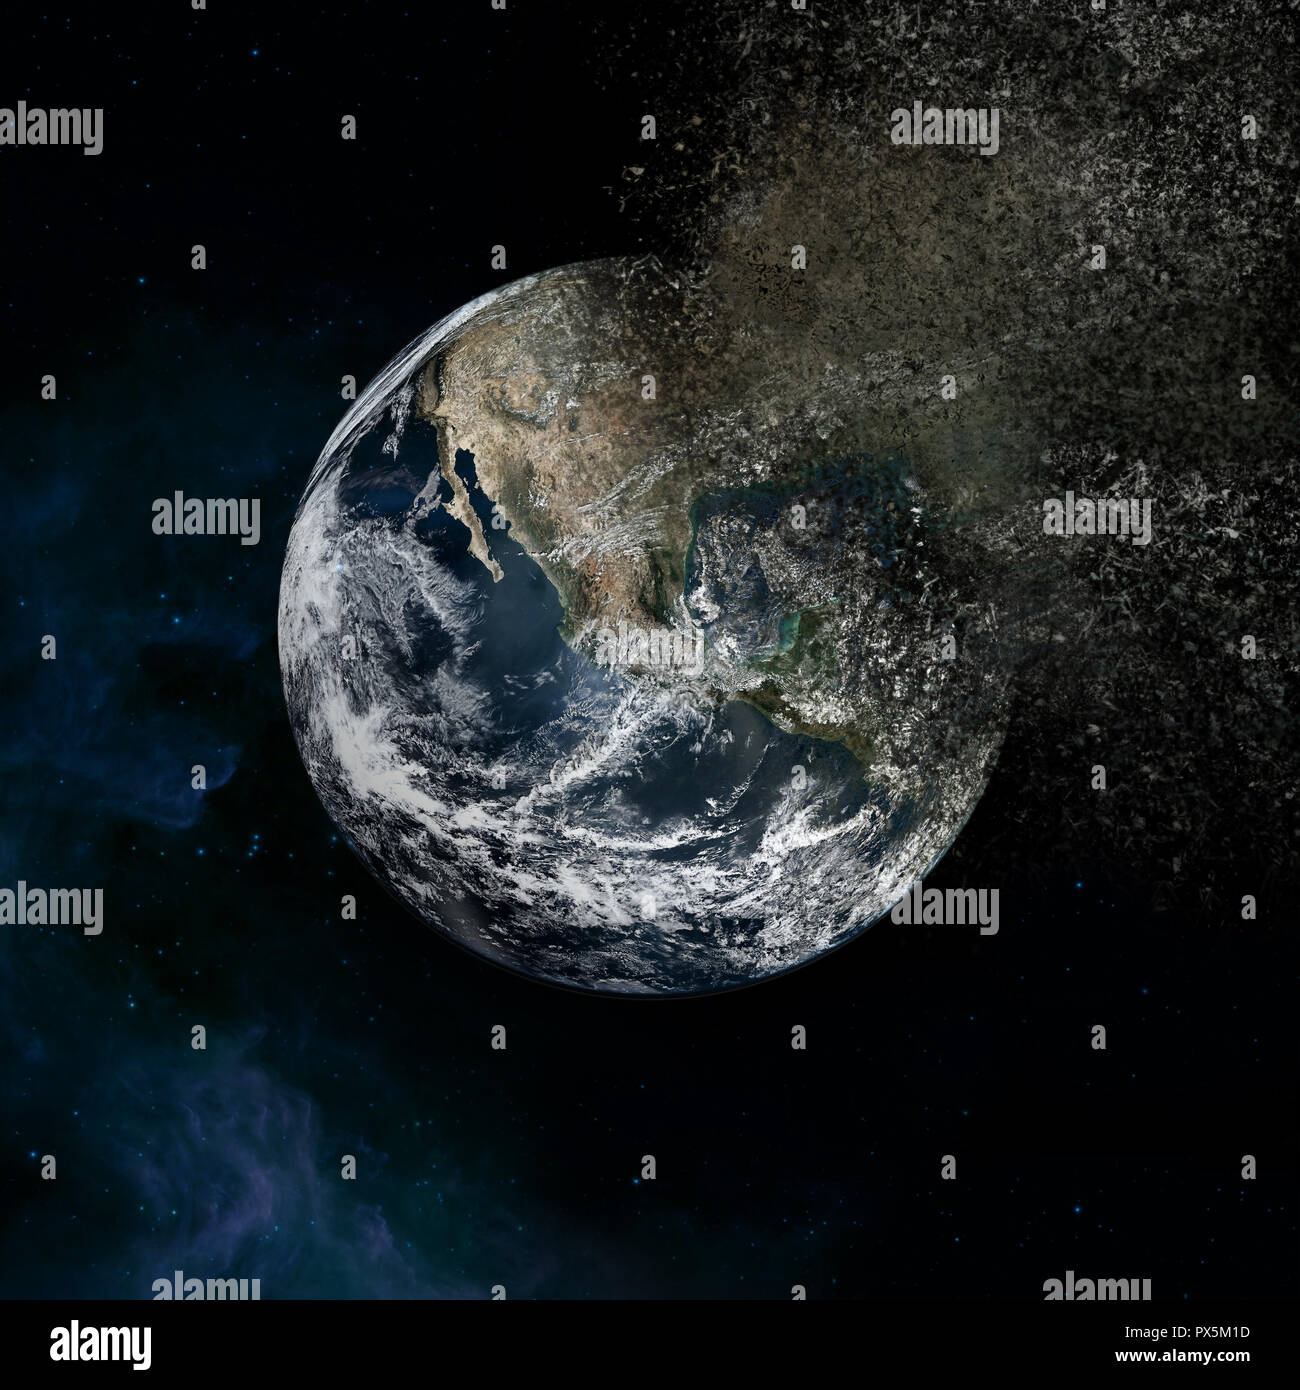 Earth vanisching loosing pieces - explosion in the galaxy 'Elements of this image furnished by NASA' - Stock Image